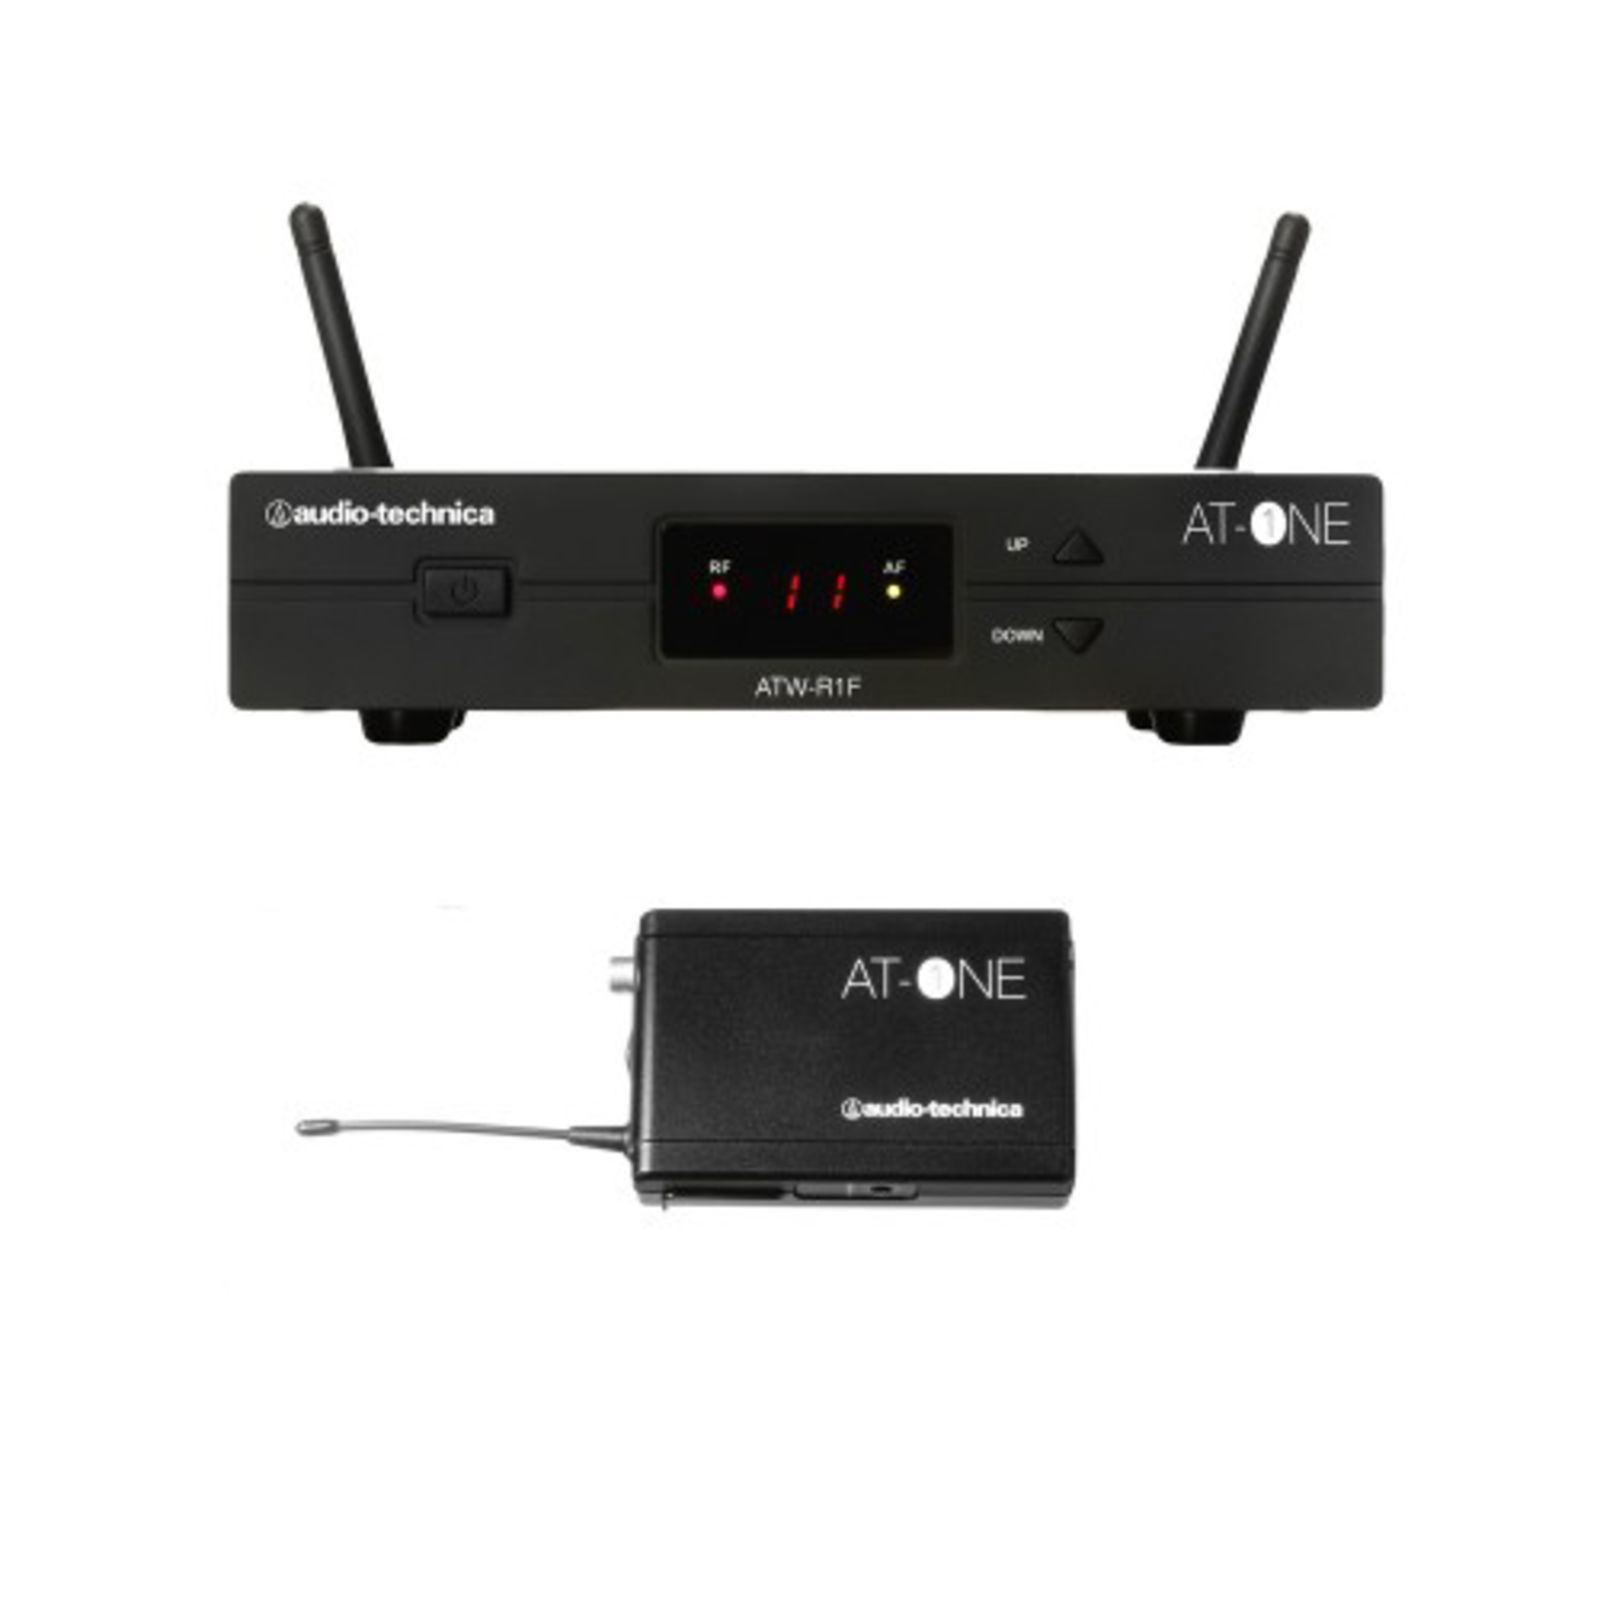 Audio-Technica AT-One Body Pack Set ATW-11F Product Image